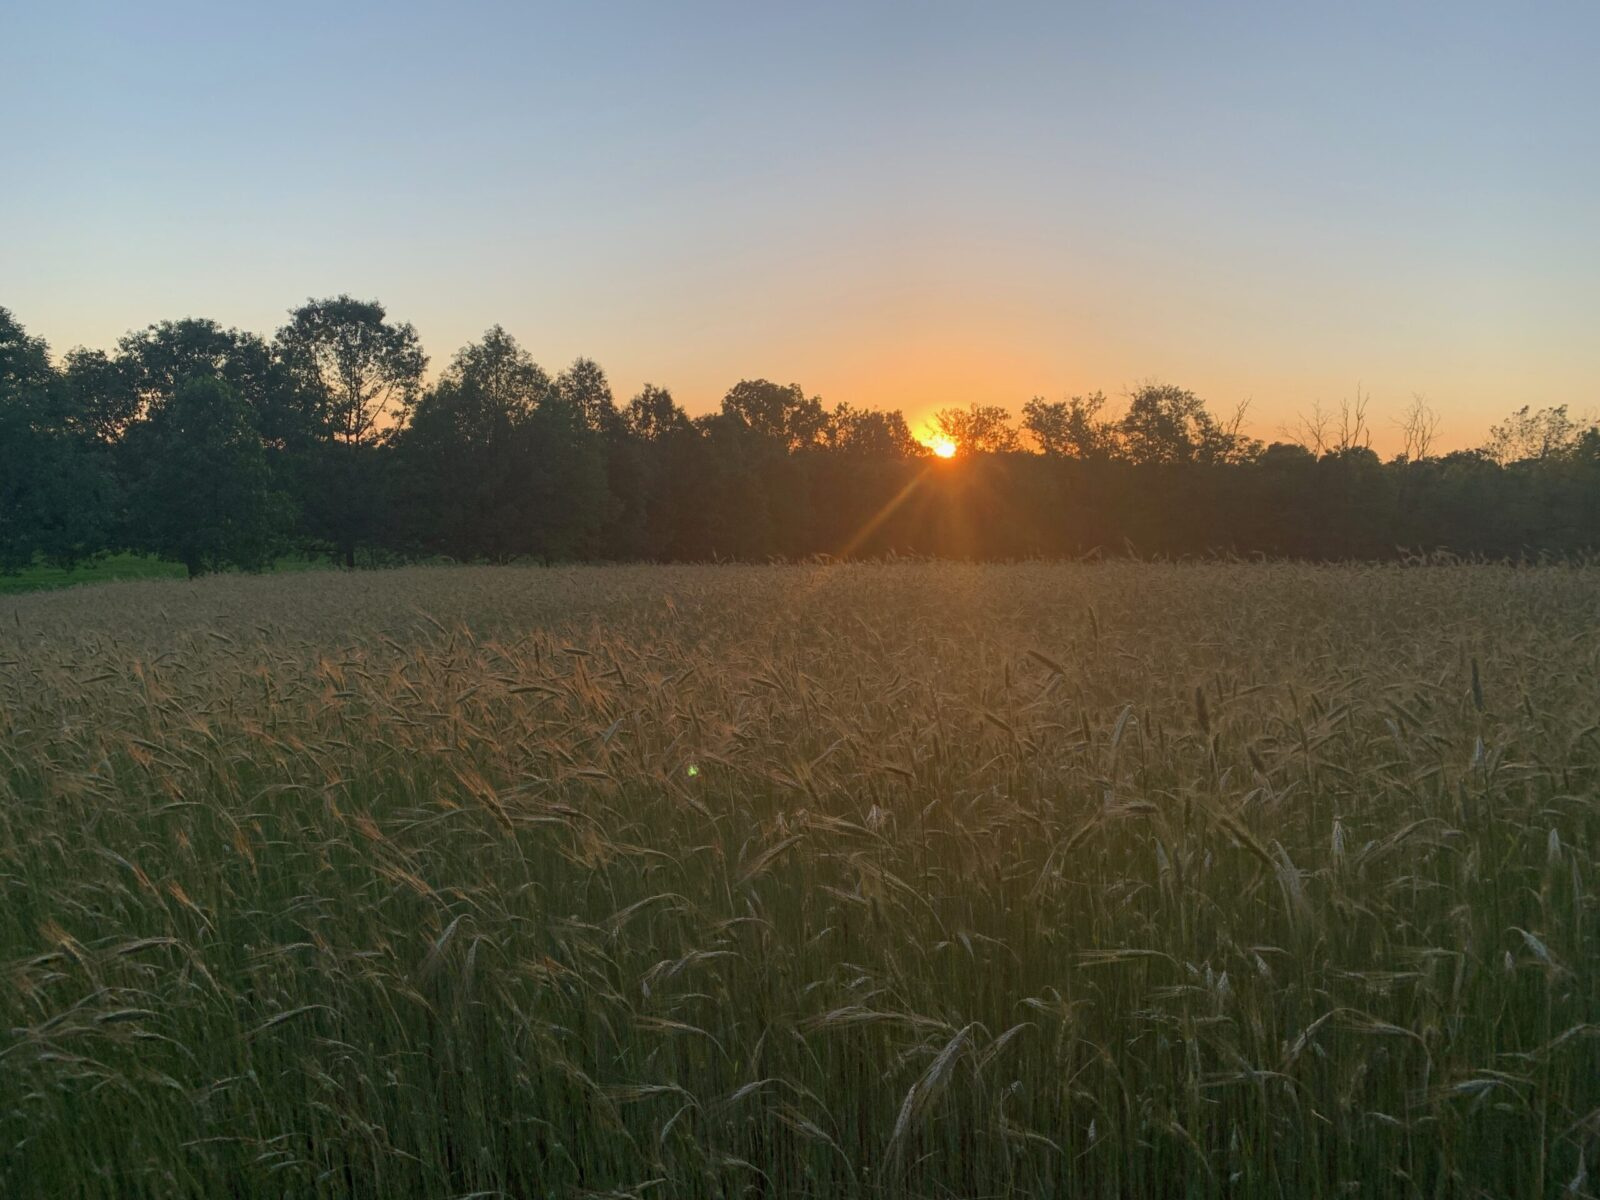 sunset over the rye field